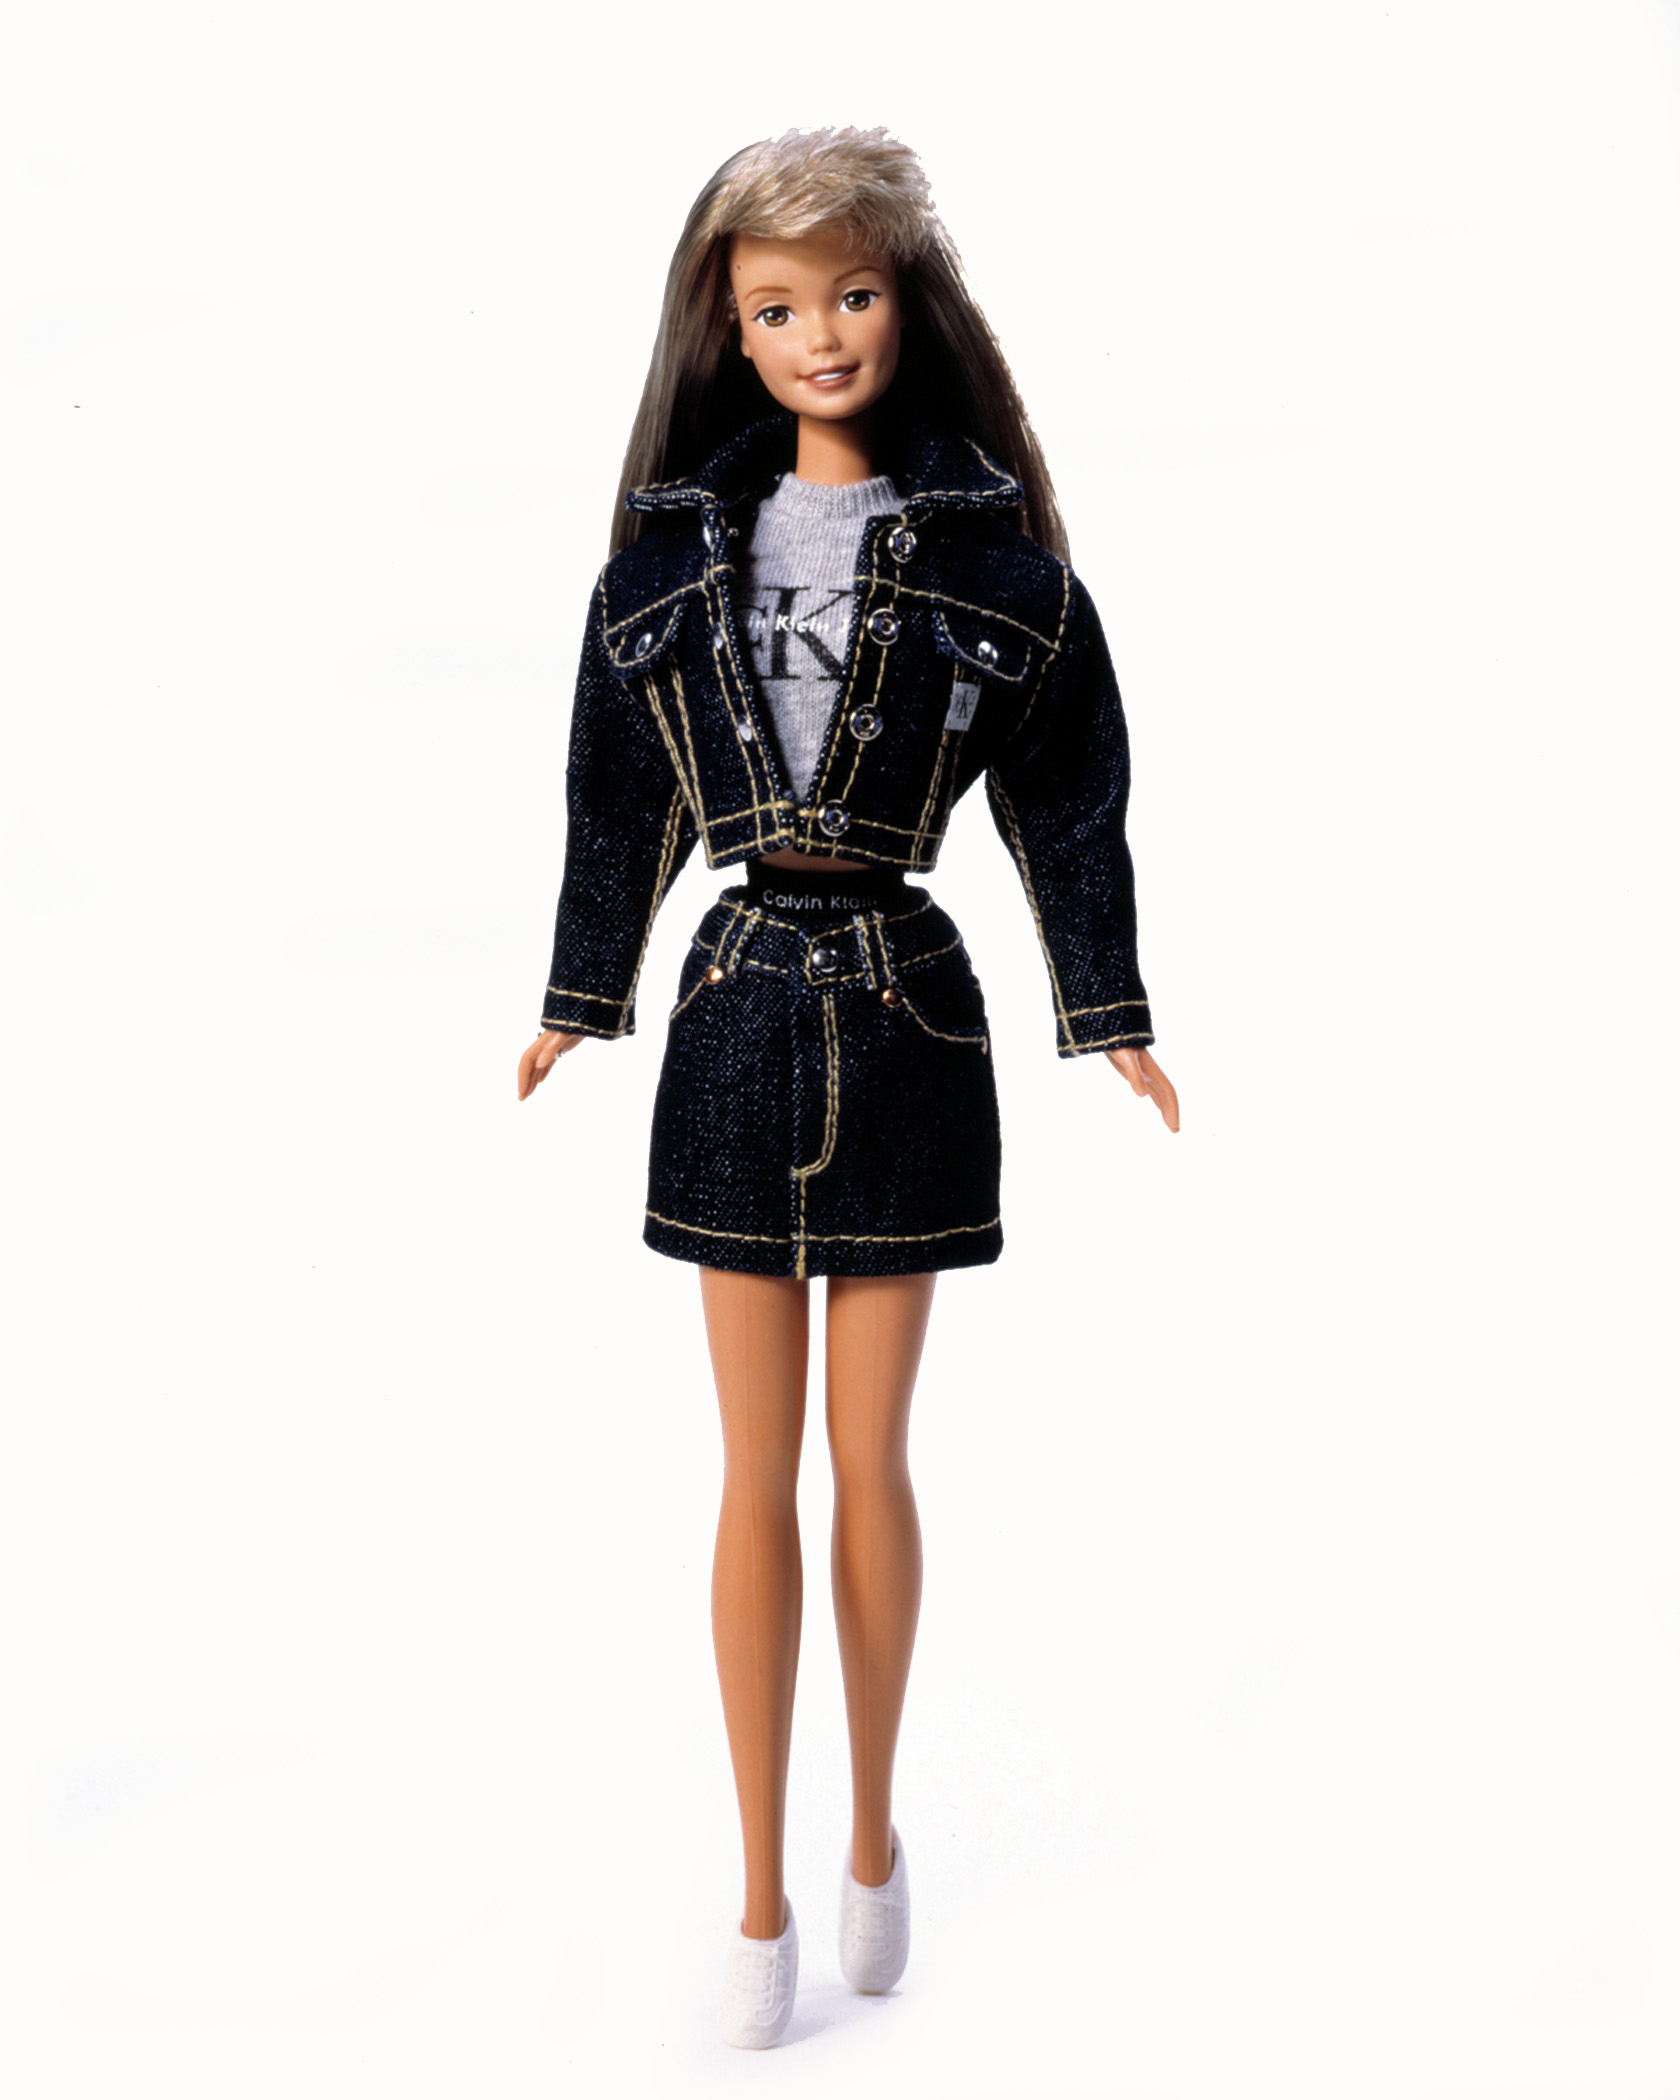 The Calvin Klein Barbie Doll, released in 1996.